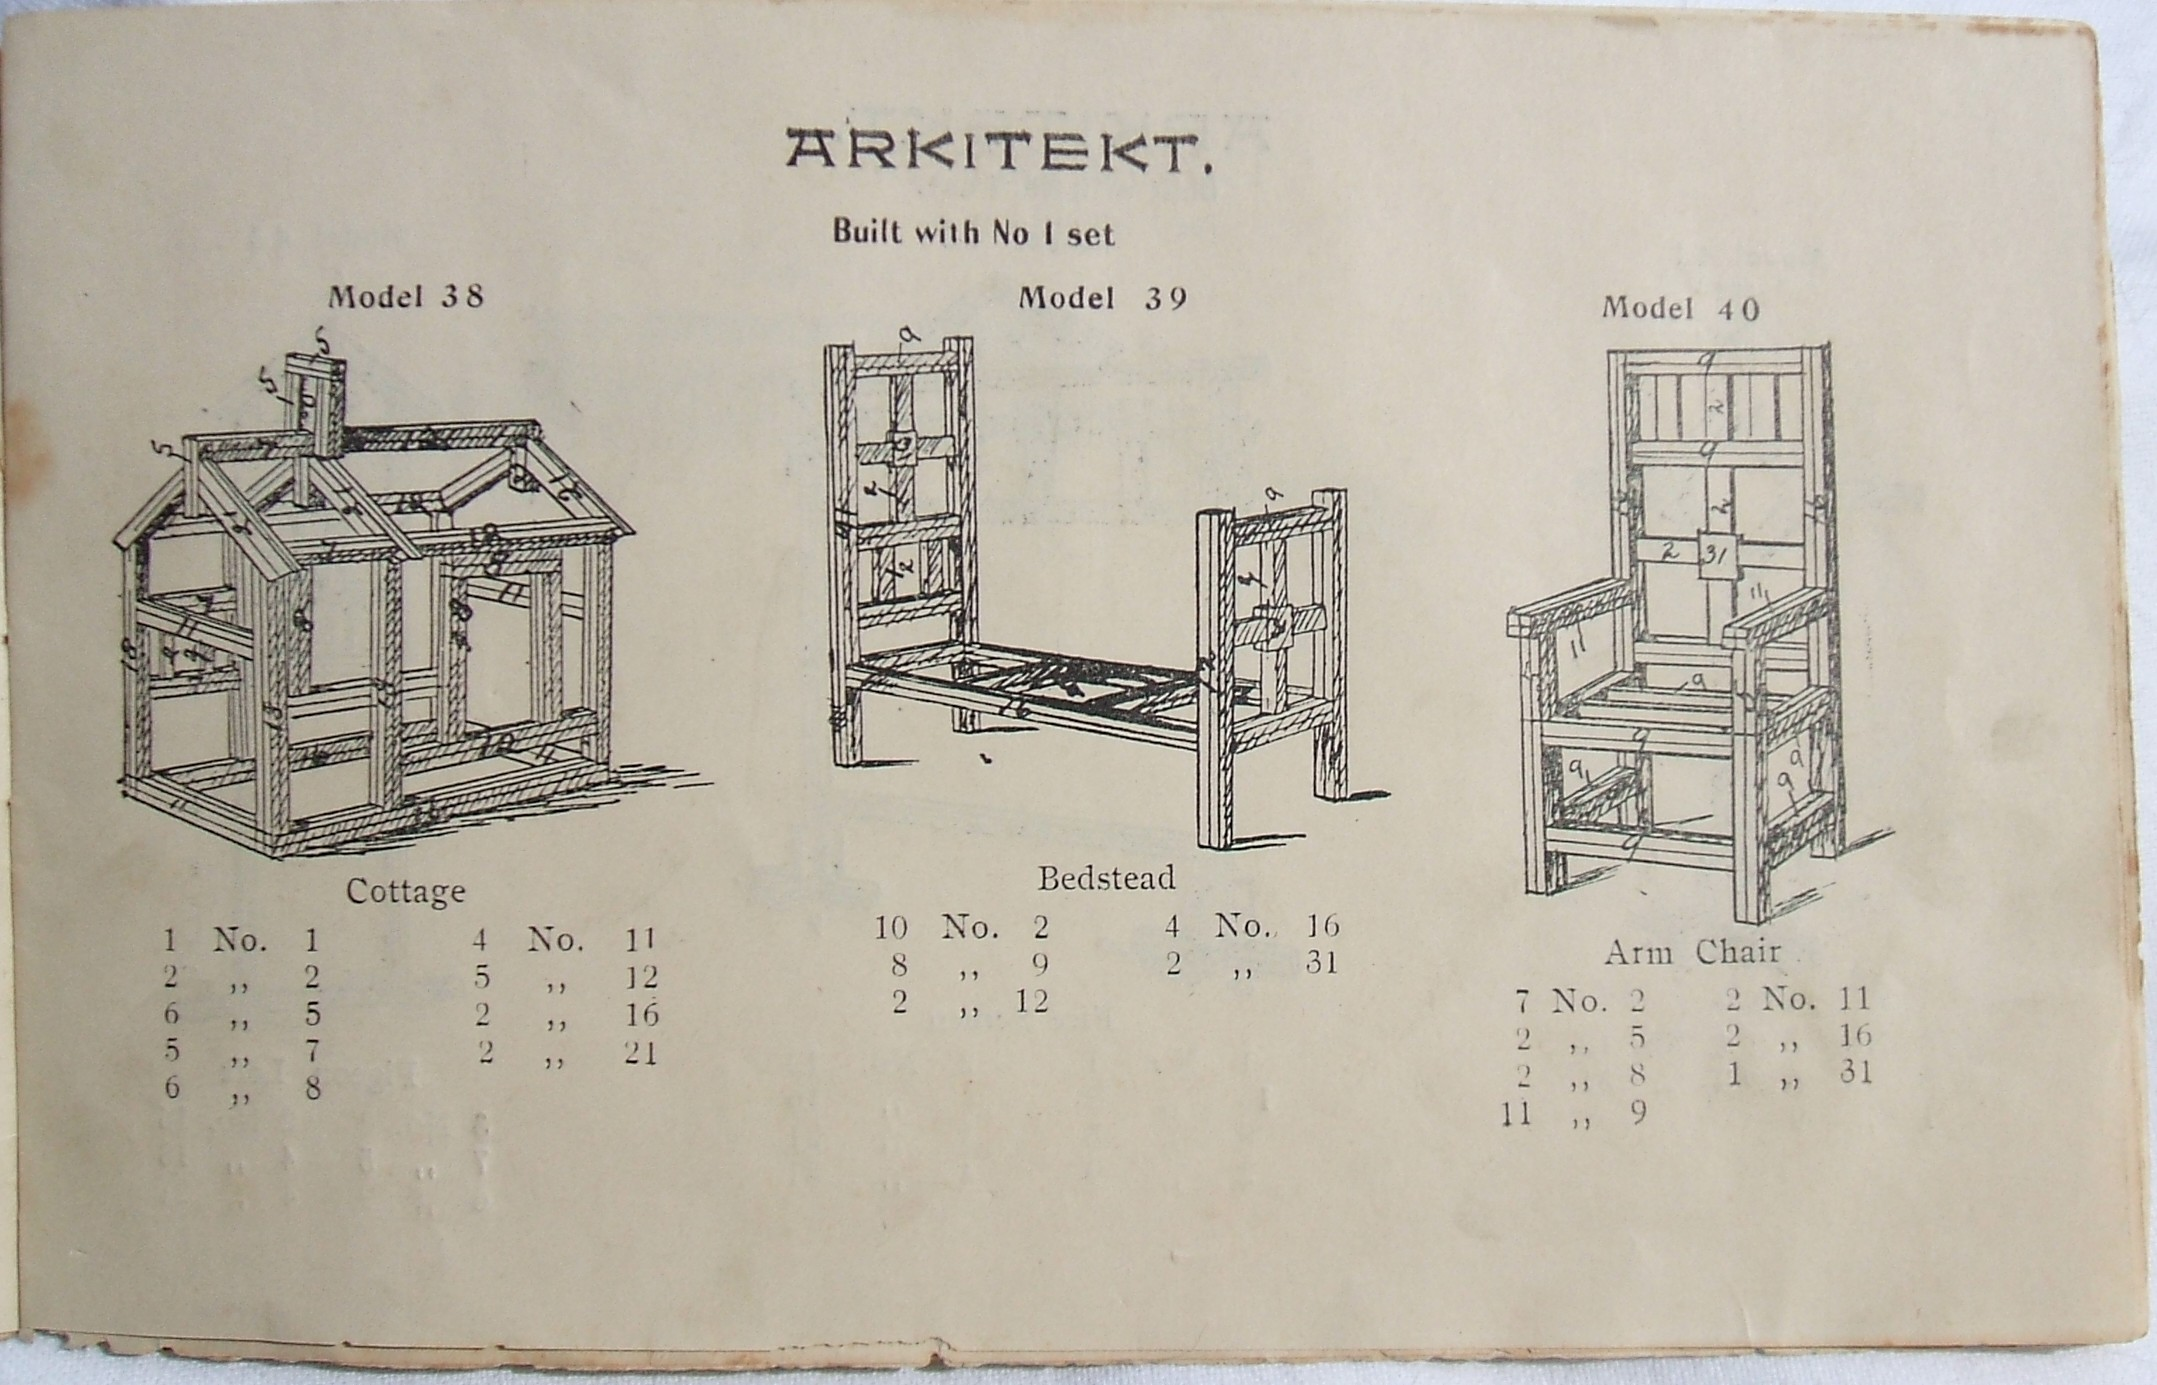 Arkitekt manual page